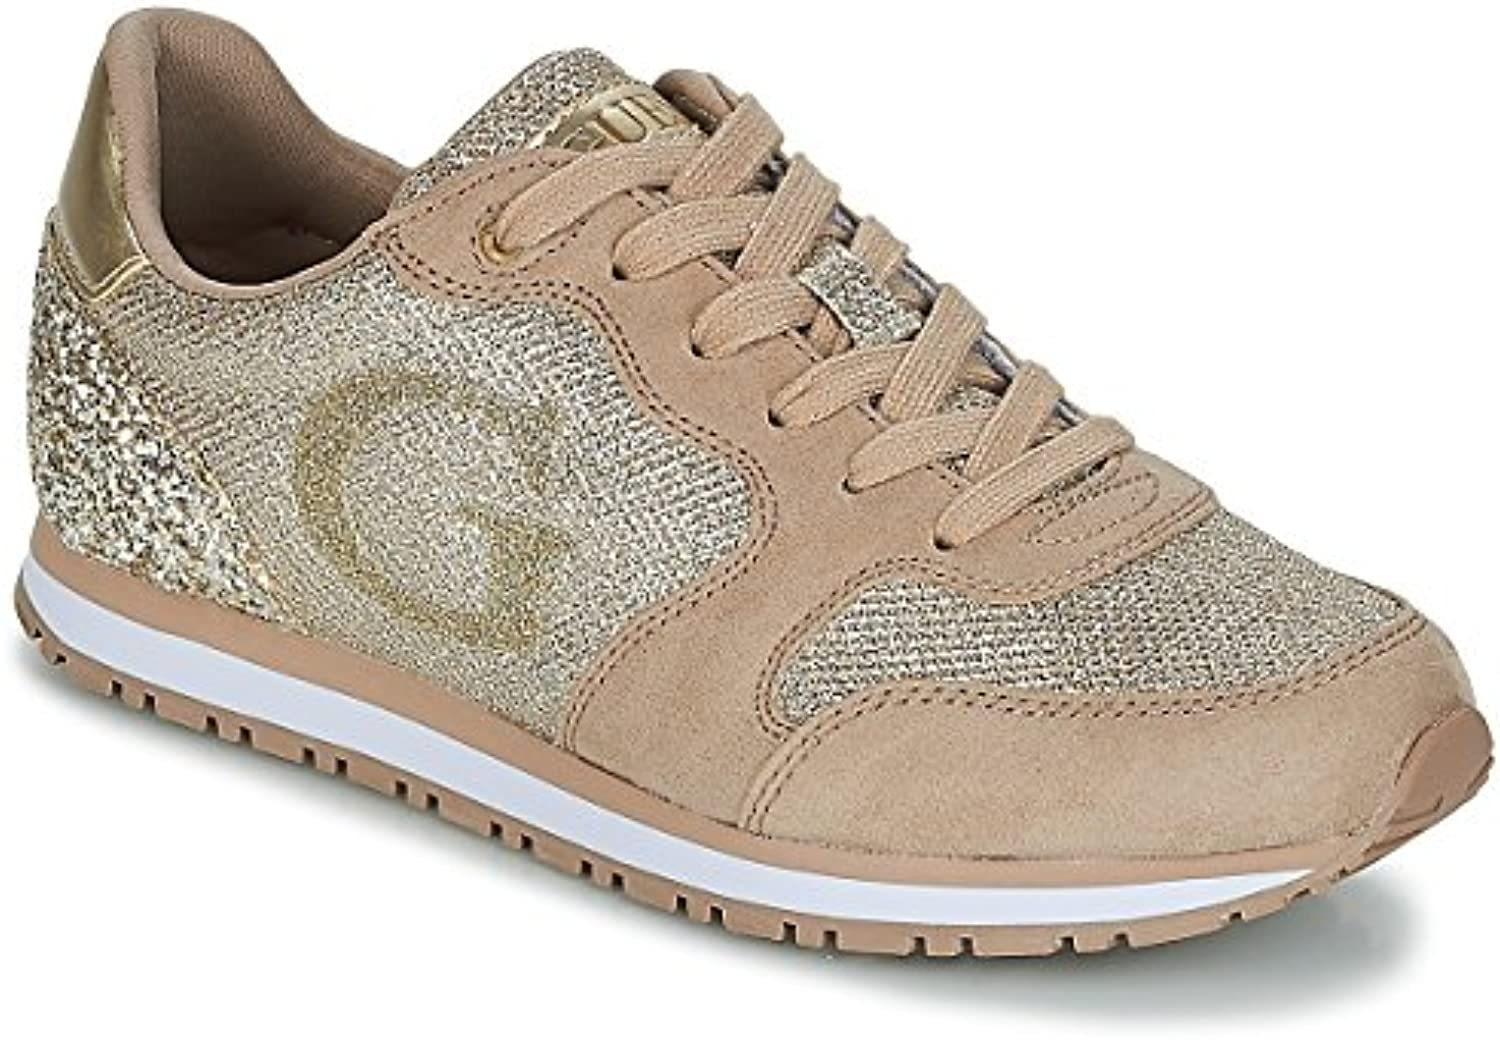 Guess Sneakers Sneakers Guess Gold   - Chaussures Running ModeB078XNQNNWParent b13662